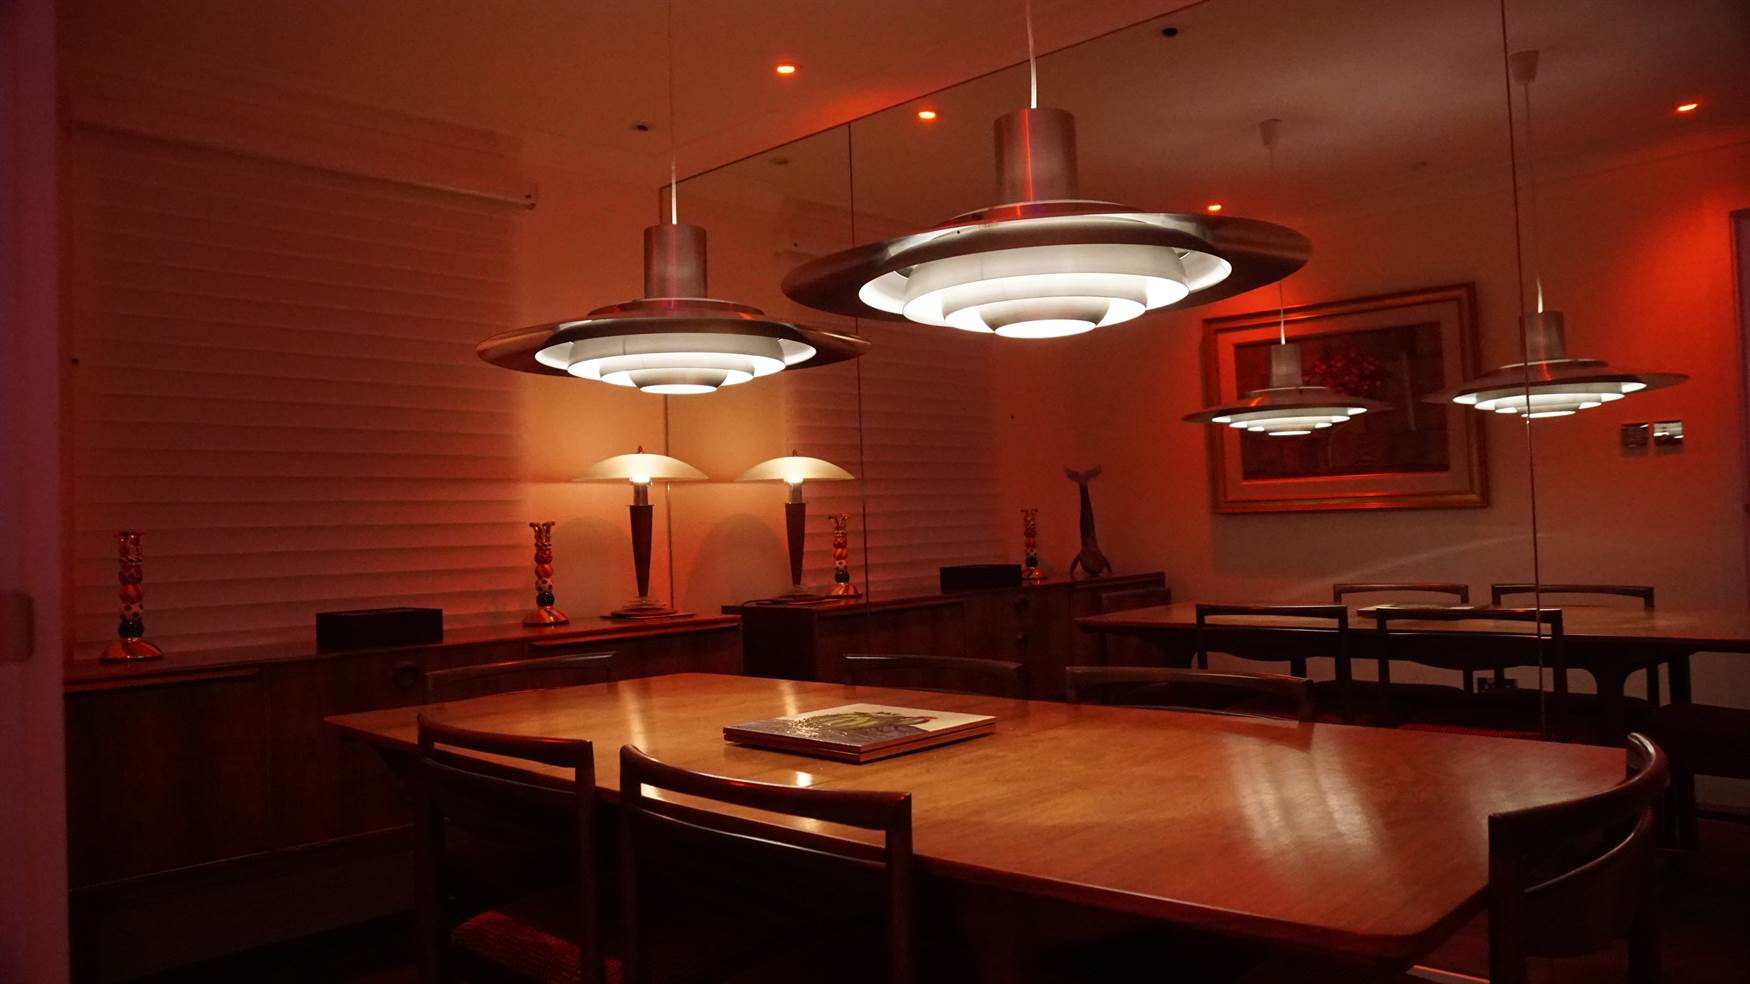 Retro pendants with RGBW downlights in dining room